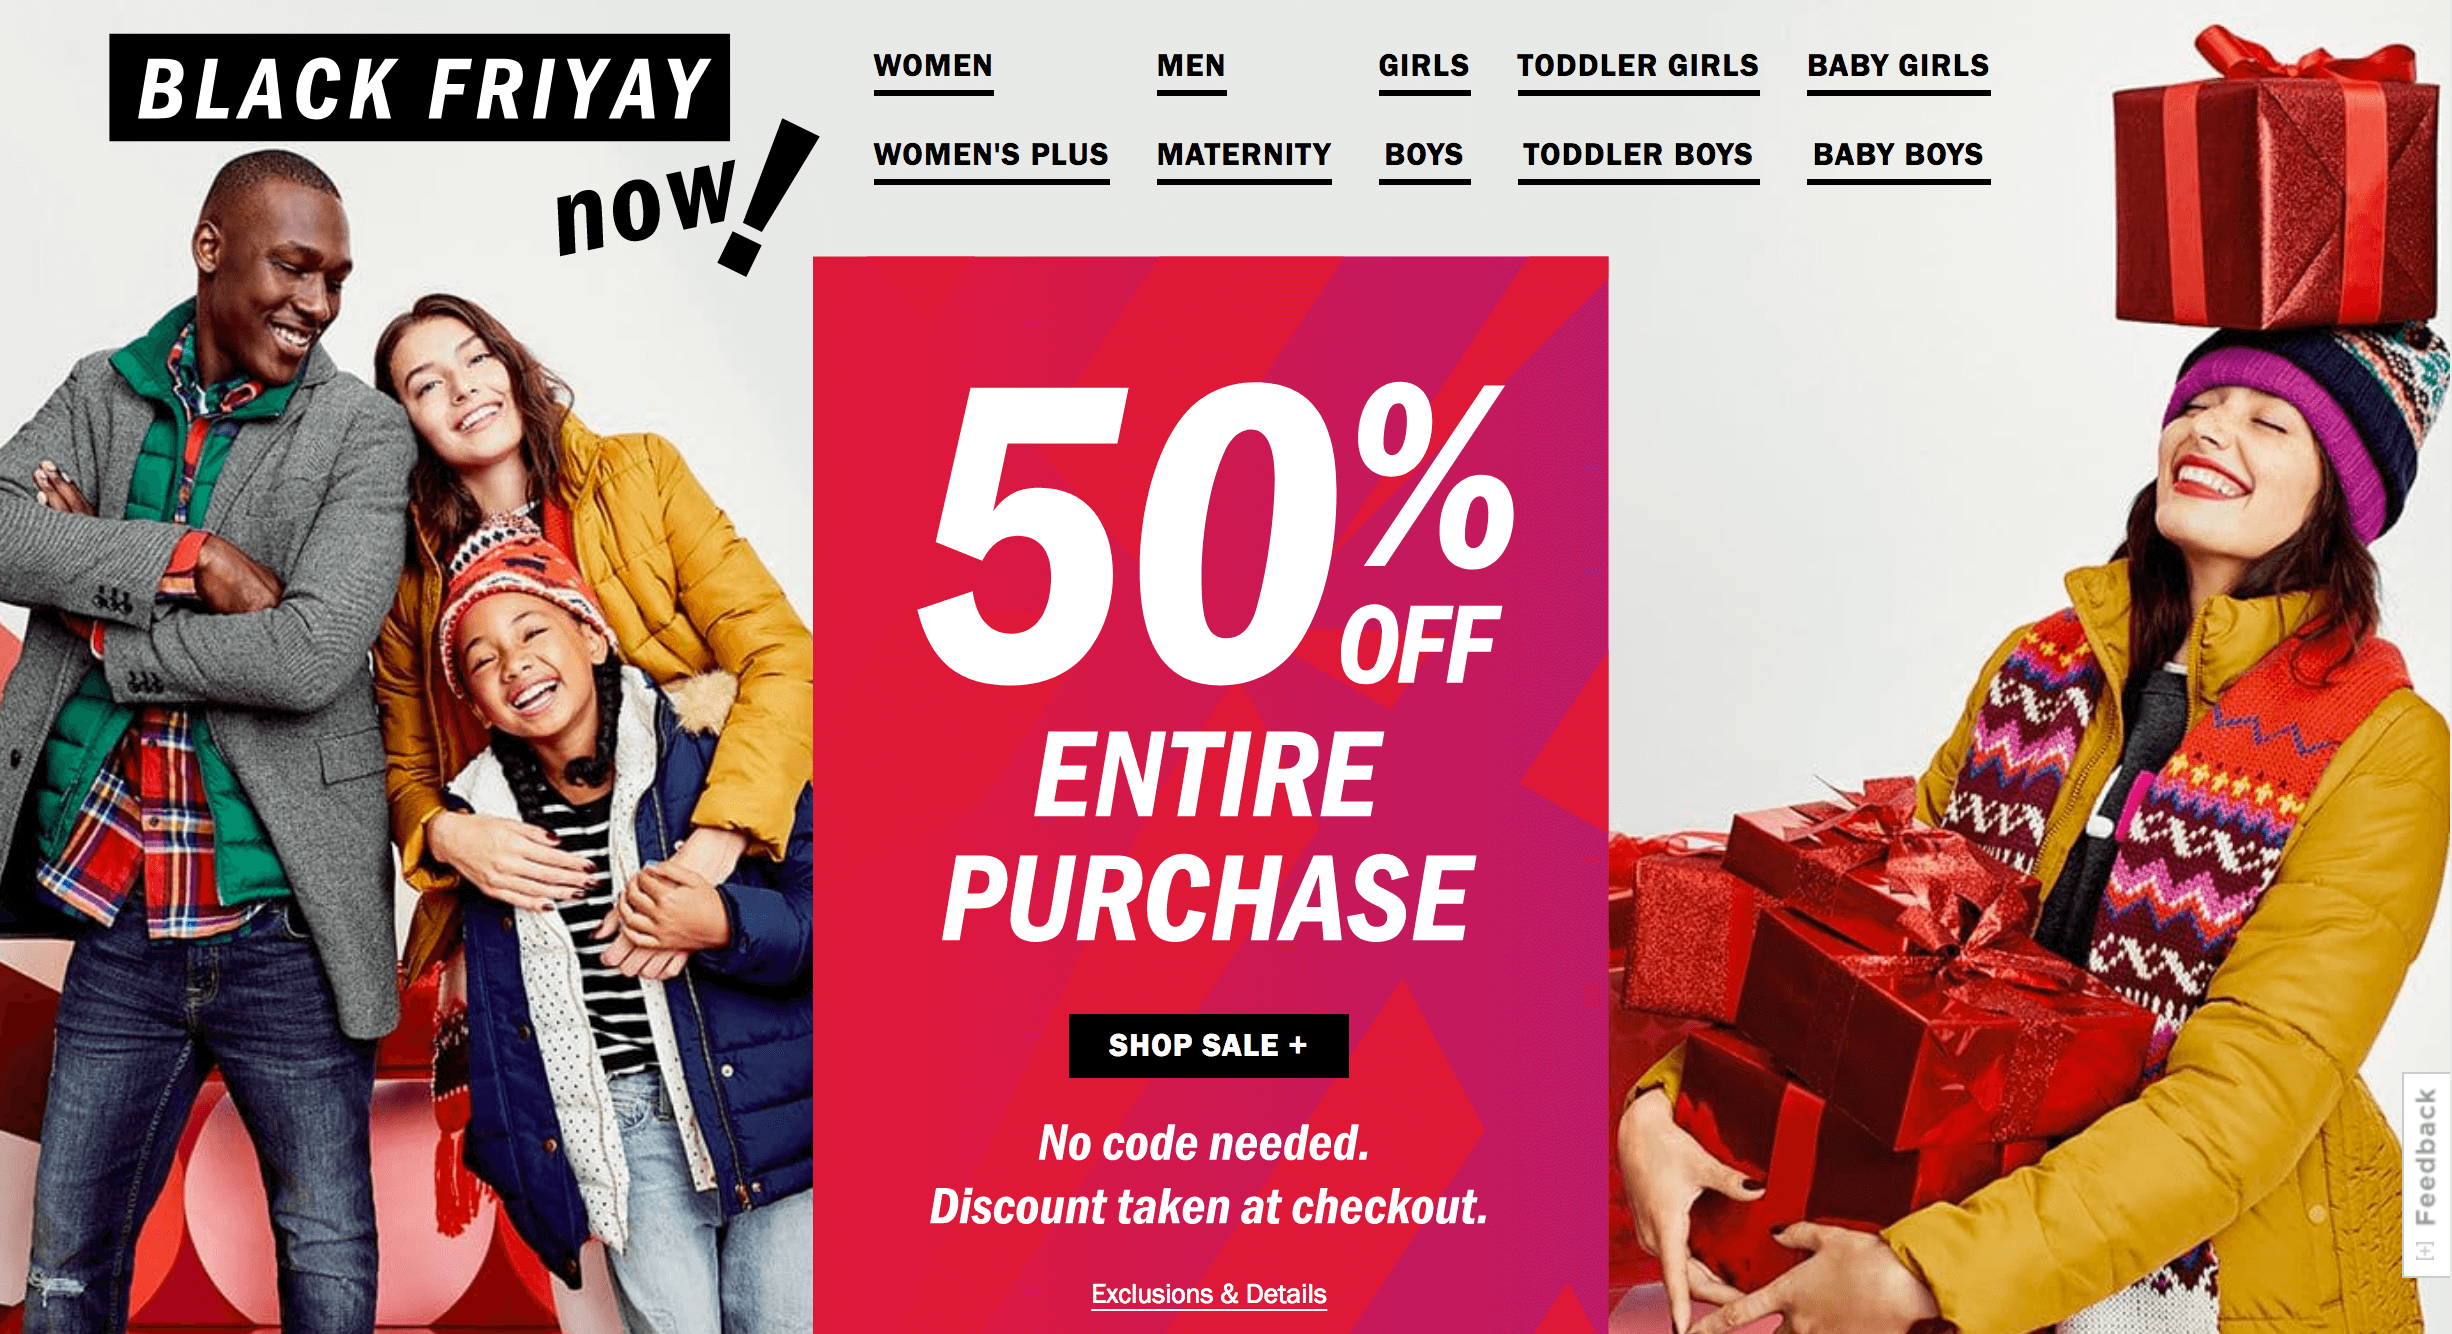 Old Navy Black Friday Sale is LIVE NOW - 50% off Everything!Living ...